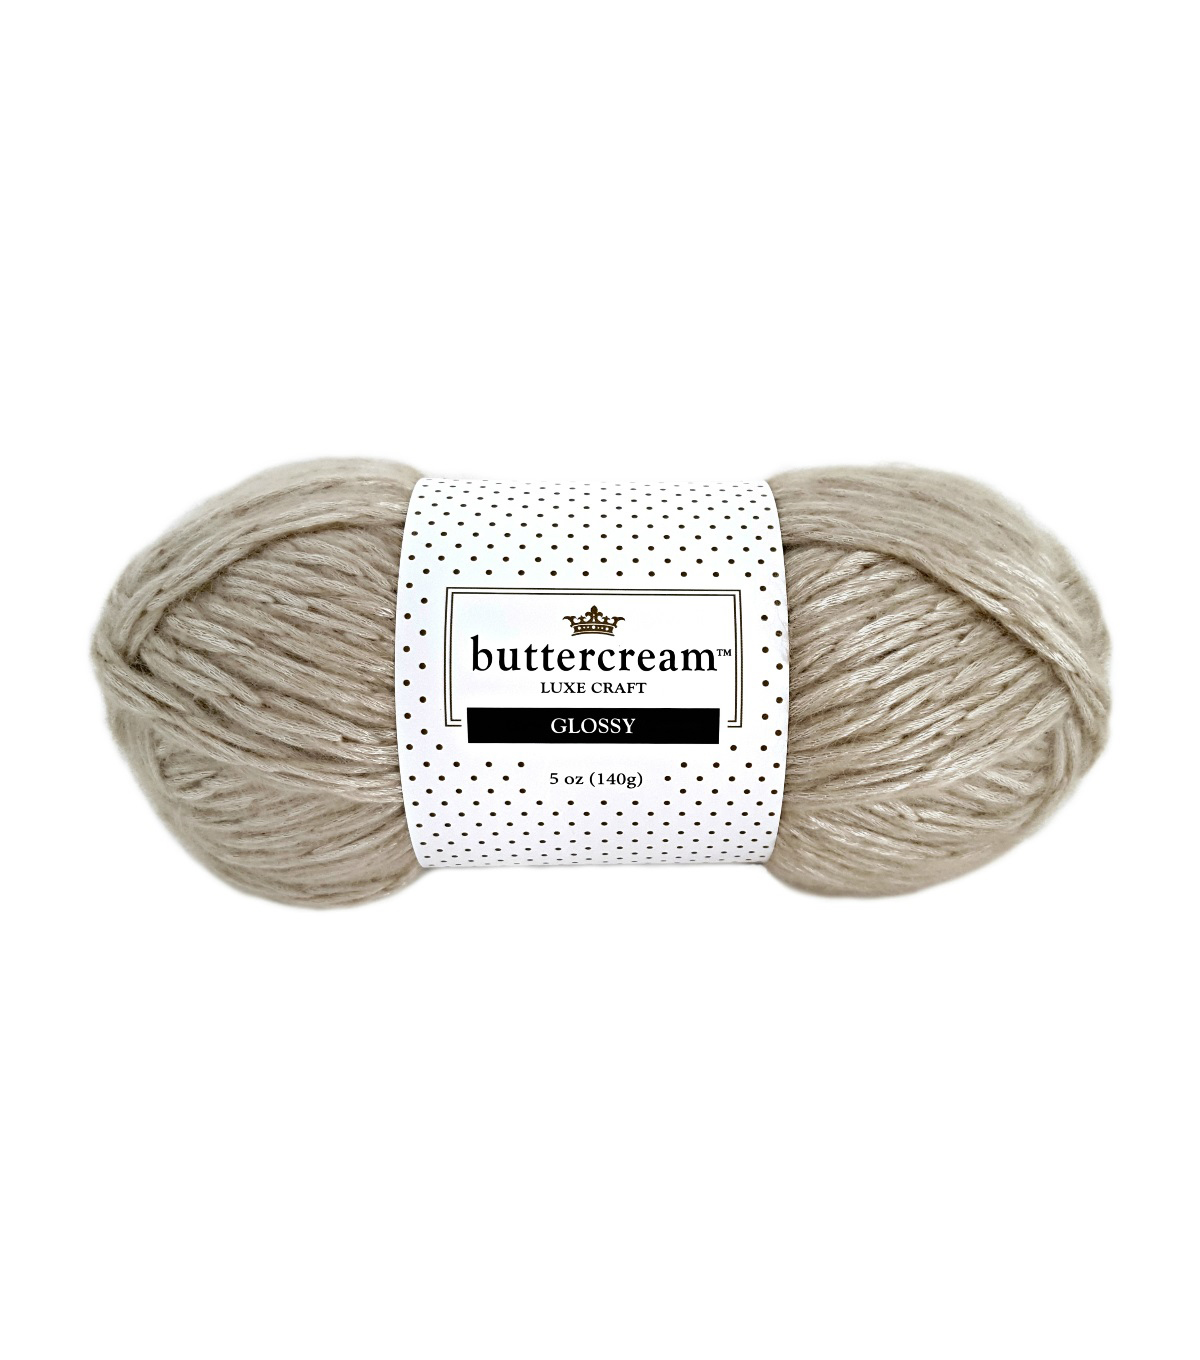 Buttercream Luxe Craft Glossy Yarn